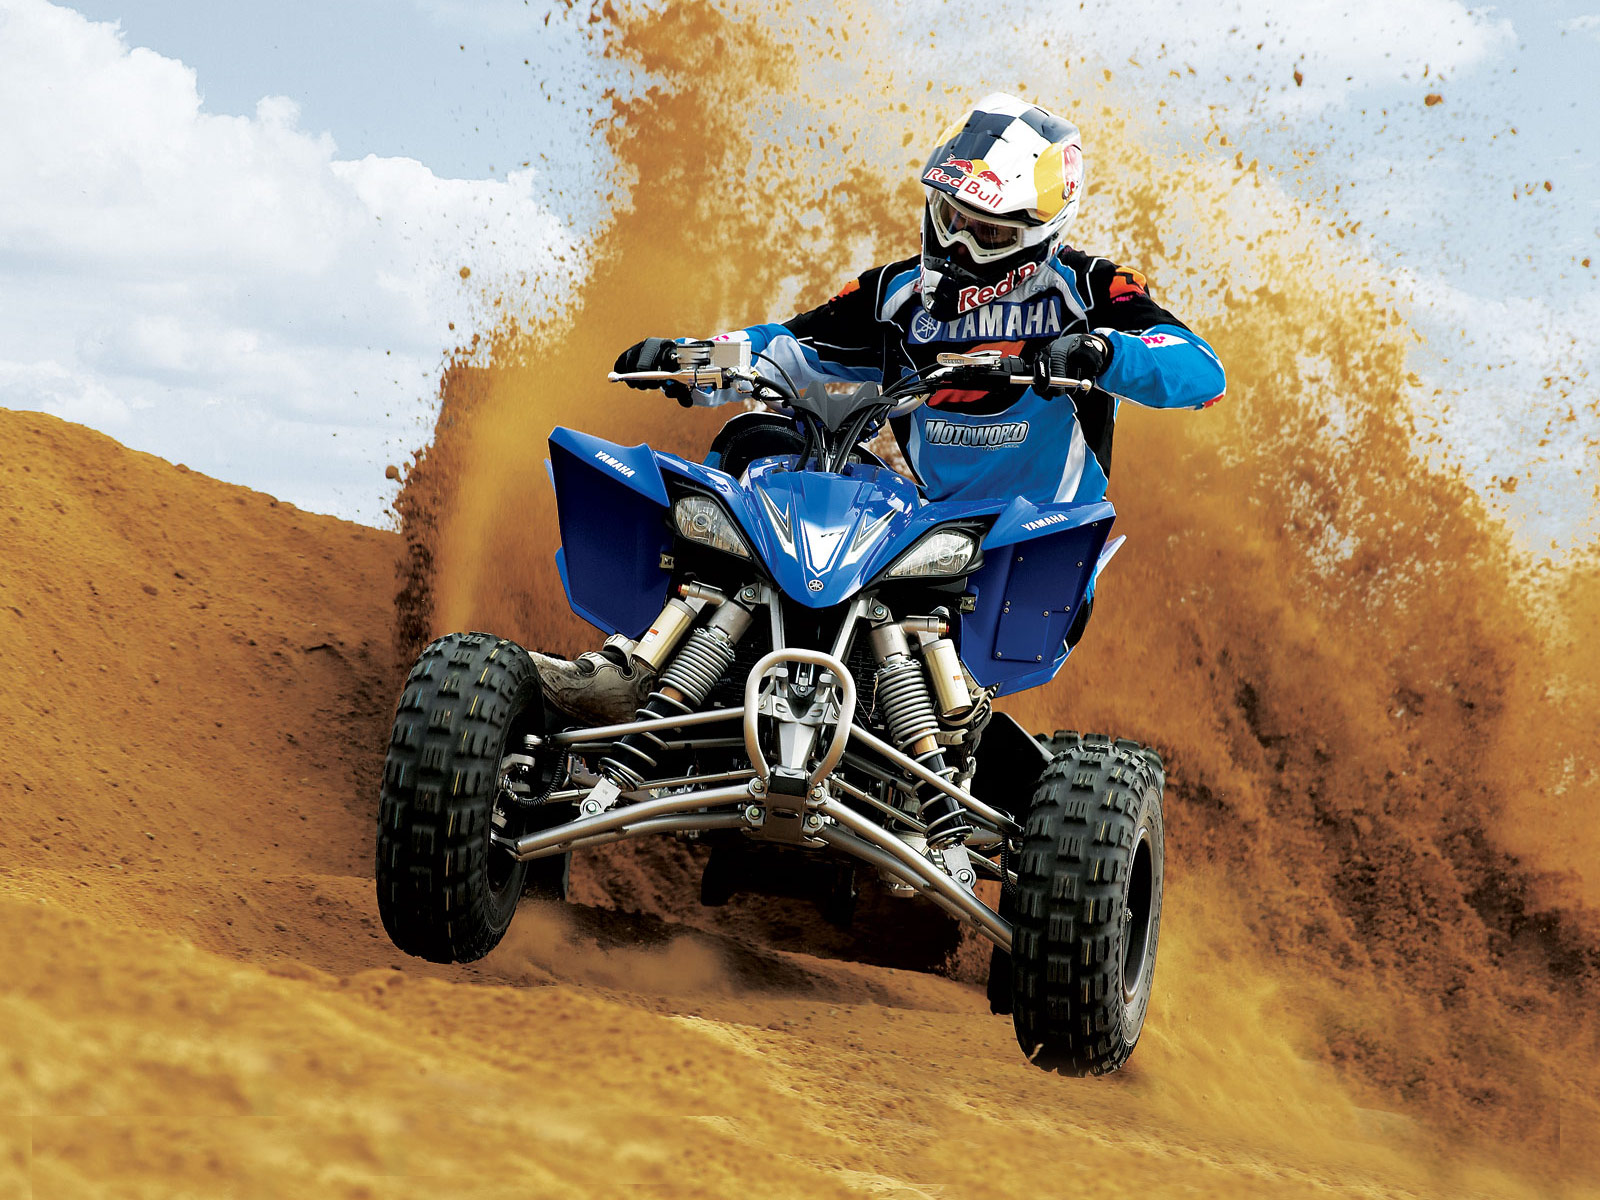 2010 yamaha yzf450r atv wallpapers specifications. Black Bedroom Furniture Sets. Home Design Ideas